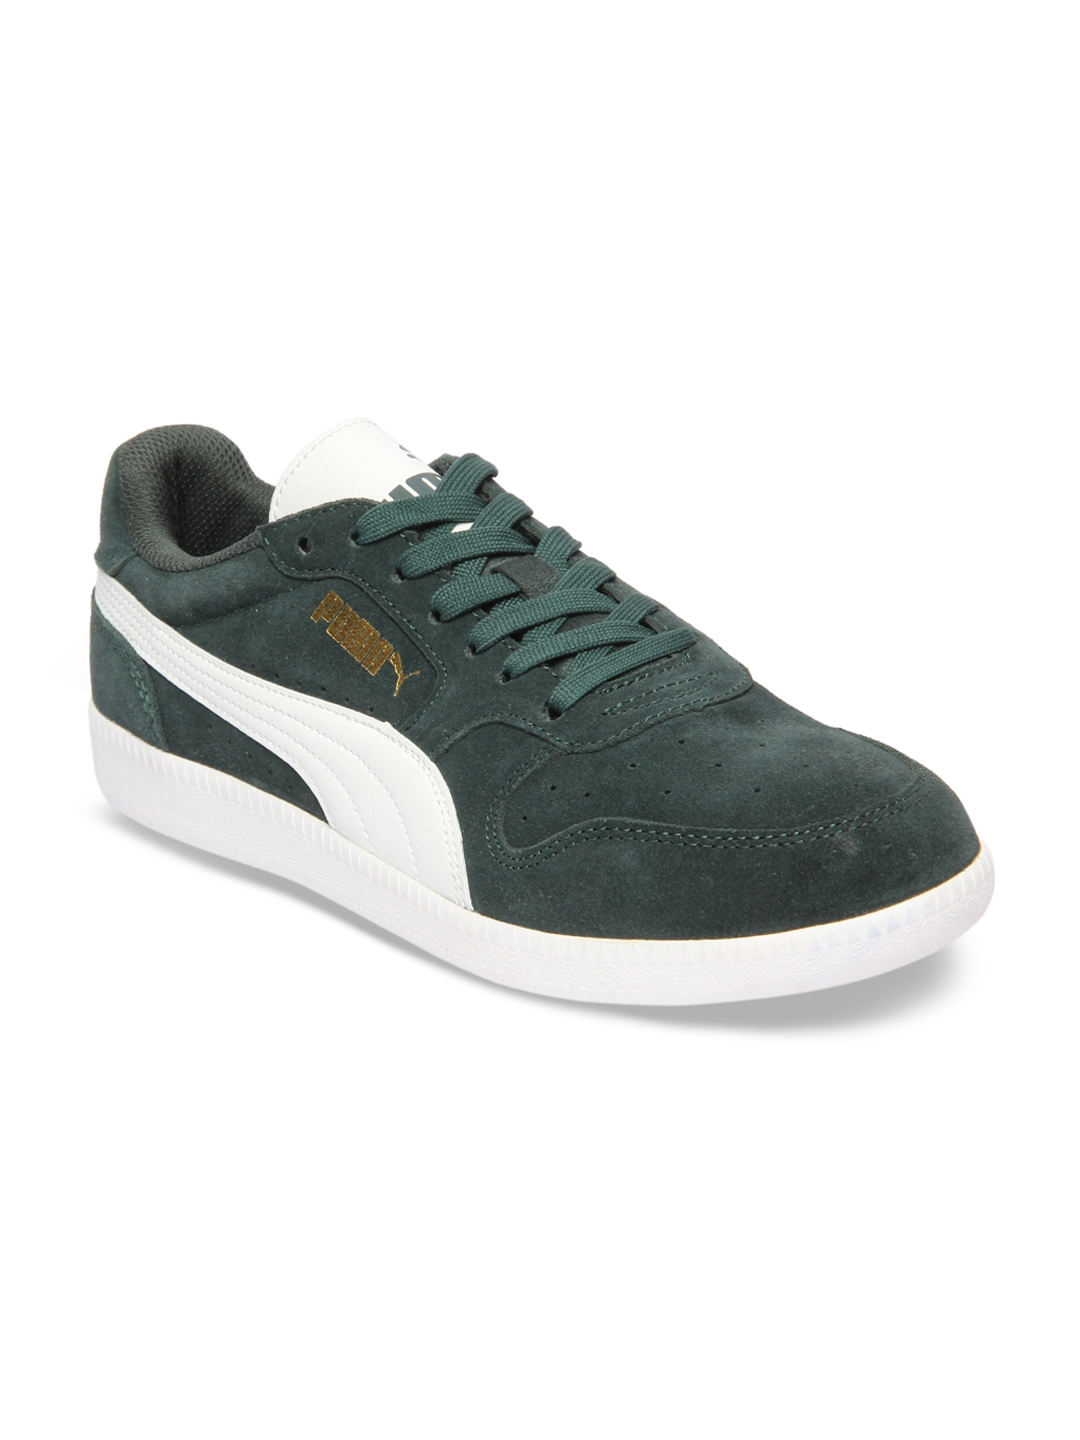 1ef284e6f10e Buy Puma Unisex Green Icra Trainer SD Sneakers - Casual Shoes for ...